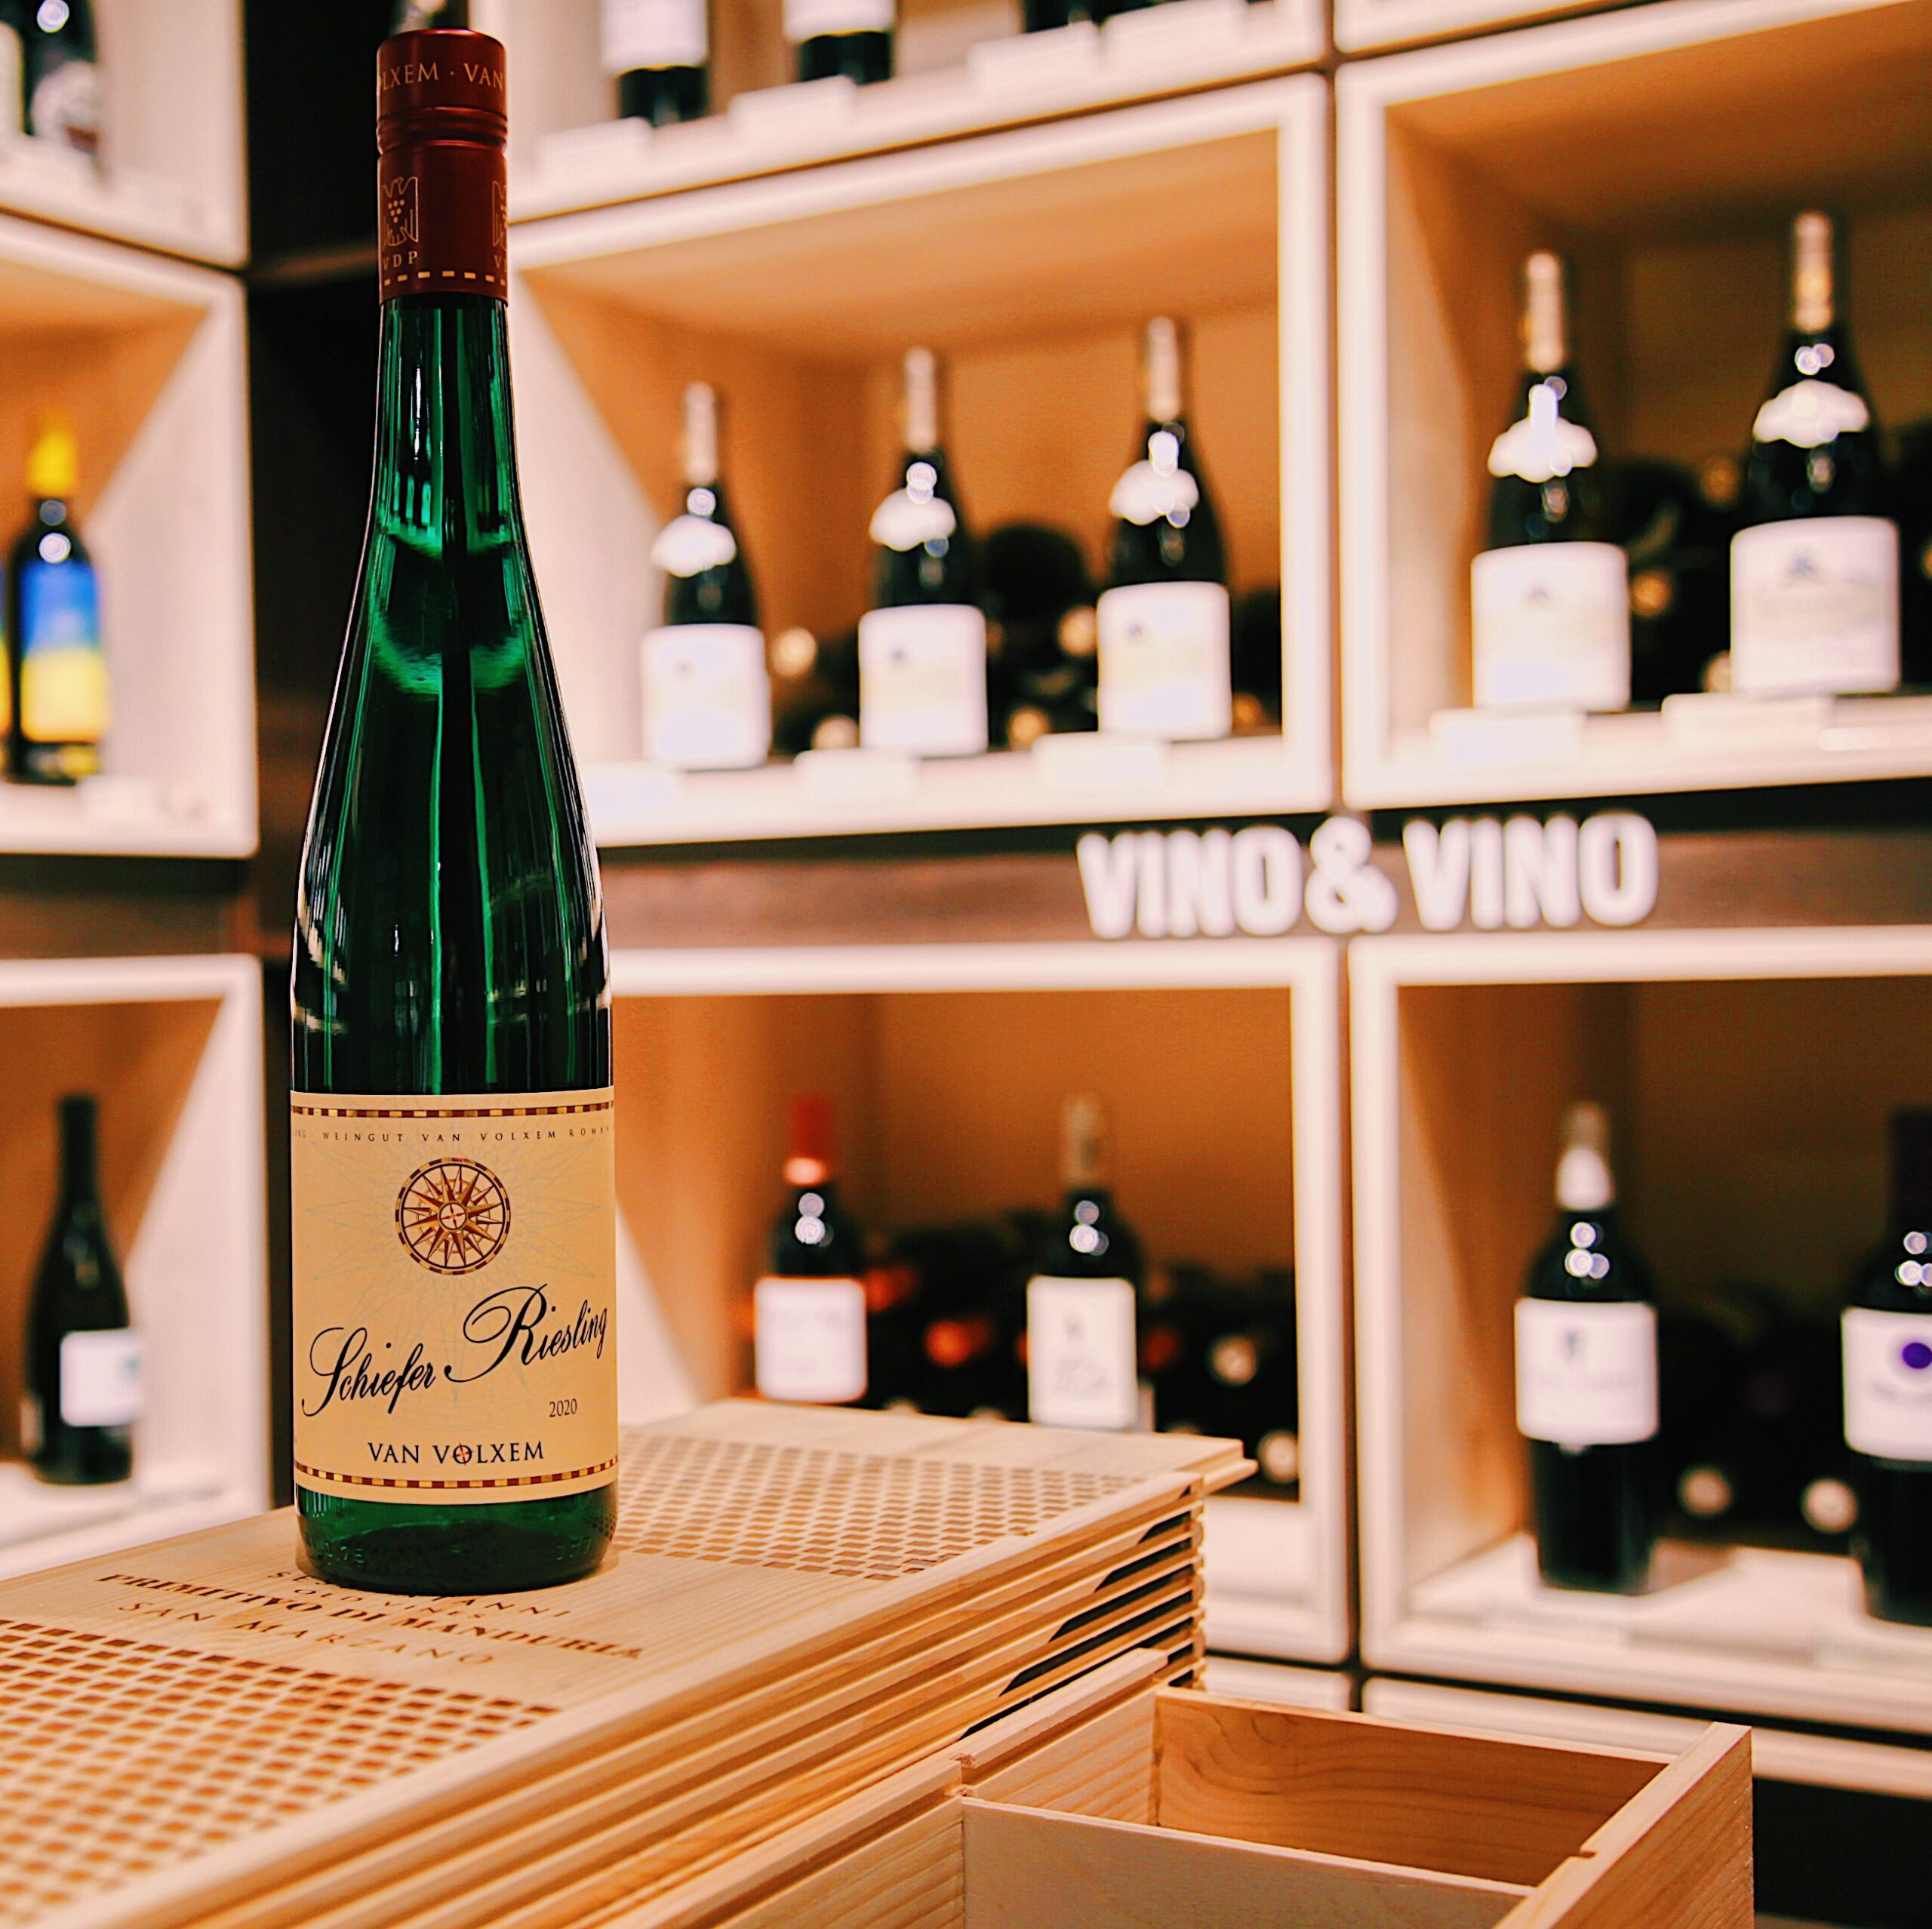 Shiefer Riesling